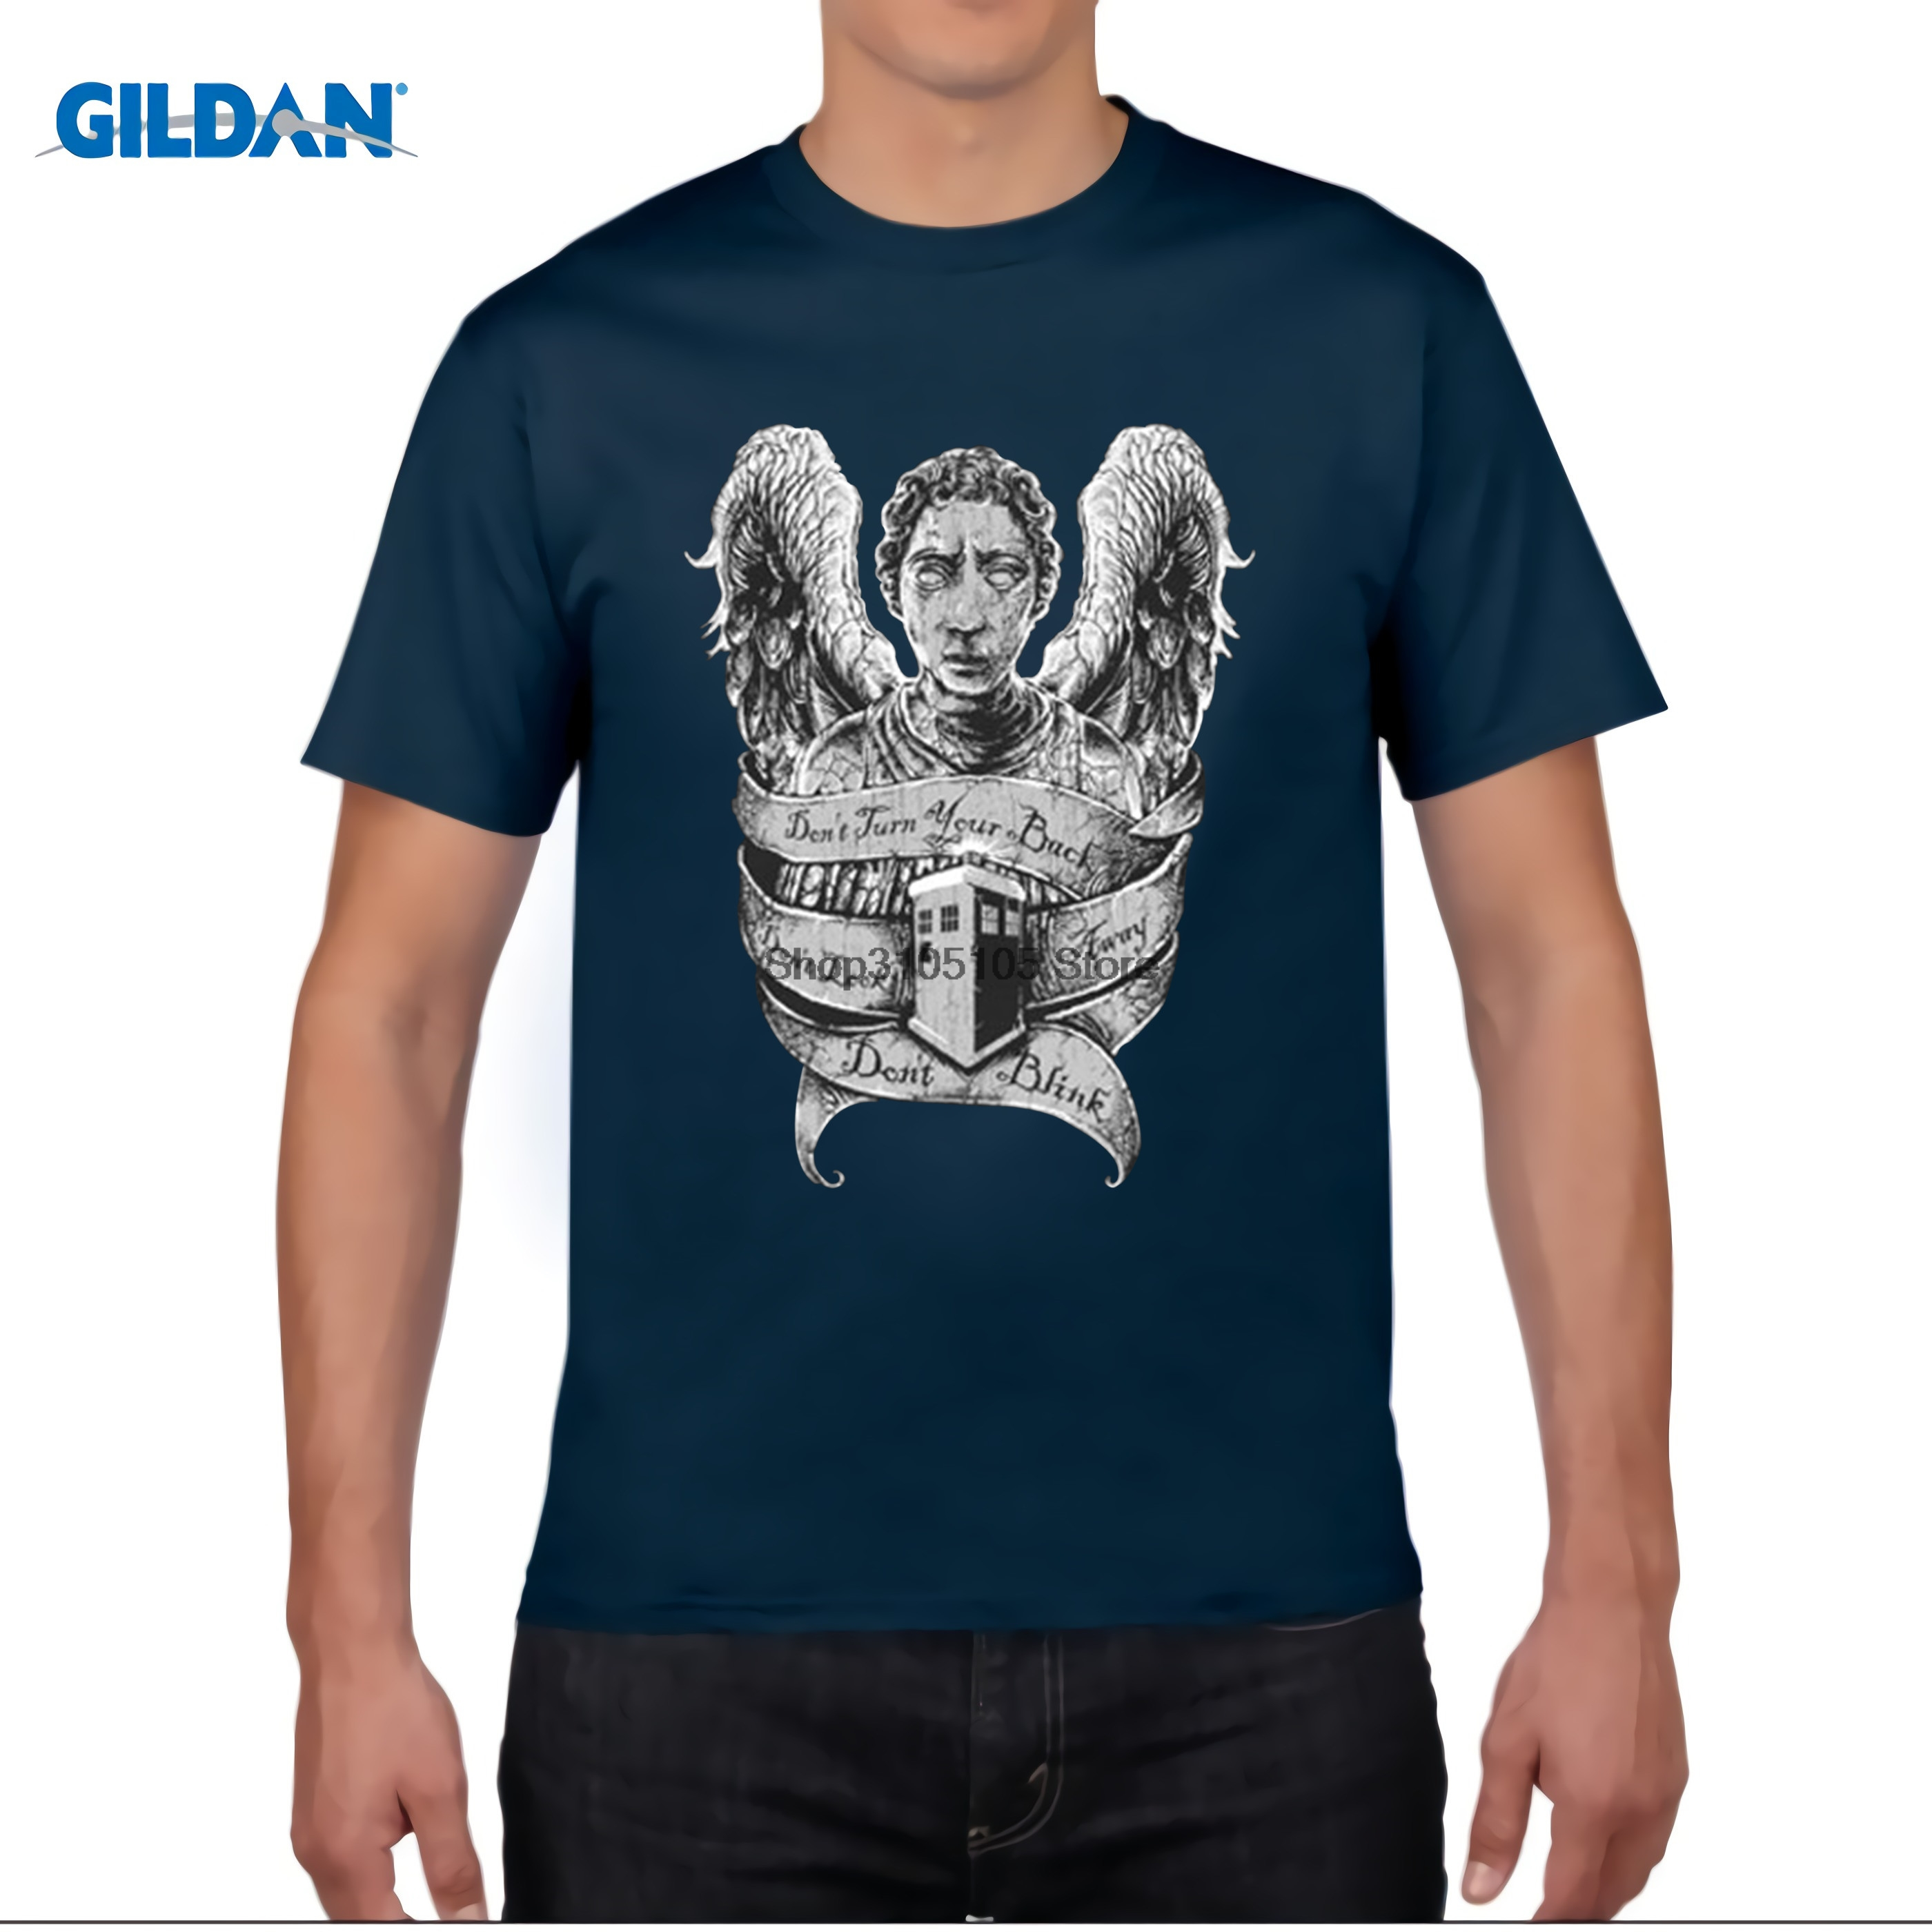 GILDAN Doctor Who classic plain shirts mens solid T shirt tee Weeping Angel O-neck cotton t shirt Fitness trend brand clothing